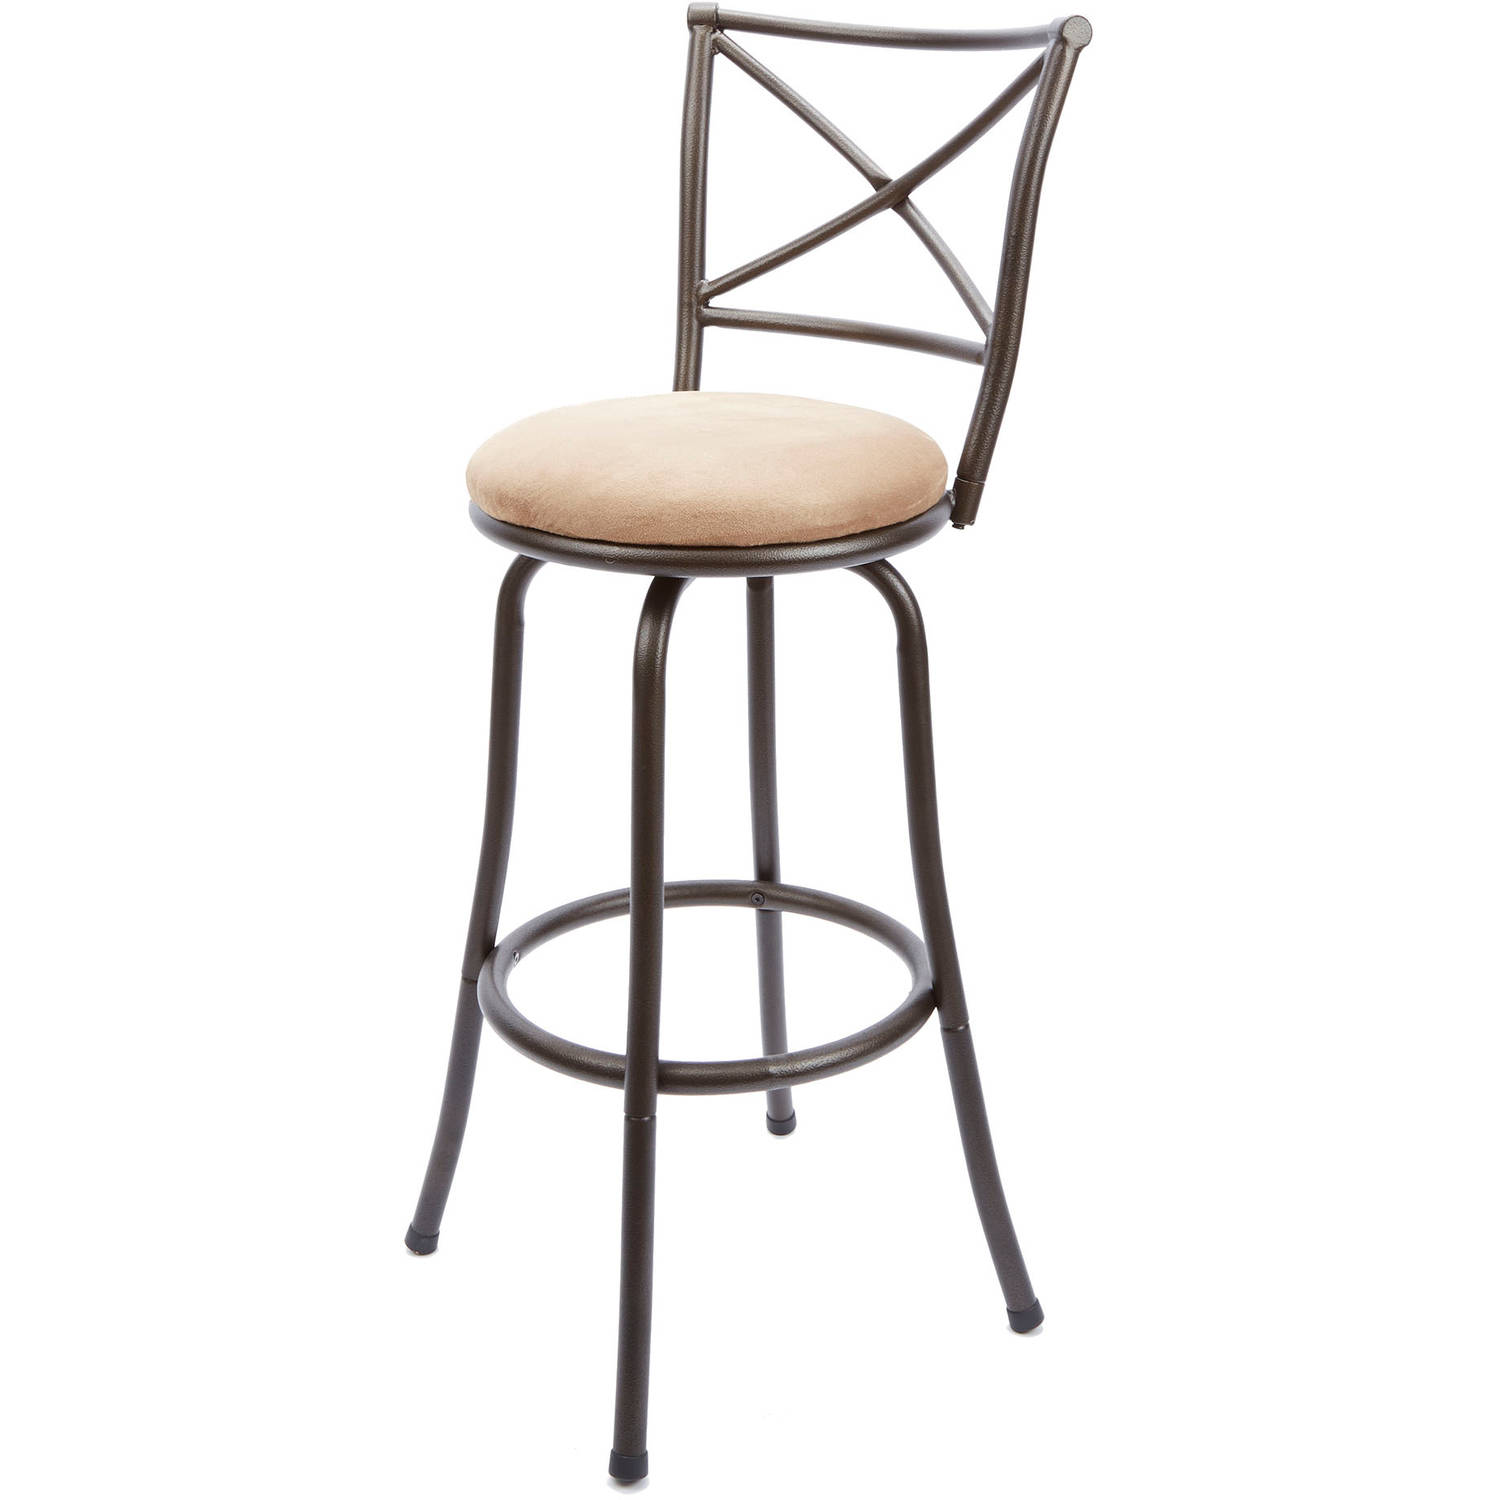 Mainstays 29  Swivel X-Back Hammered Bronzed Barstool Multiple Colors  sc 1 st  Walmart & Bamboo Bar Stools islam-shia.org